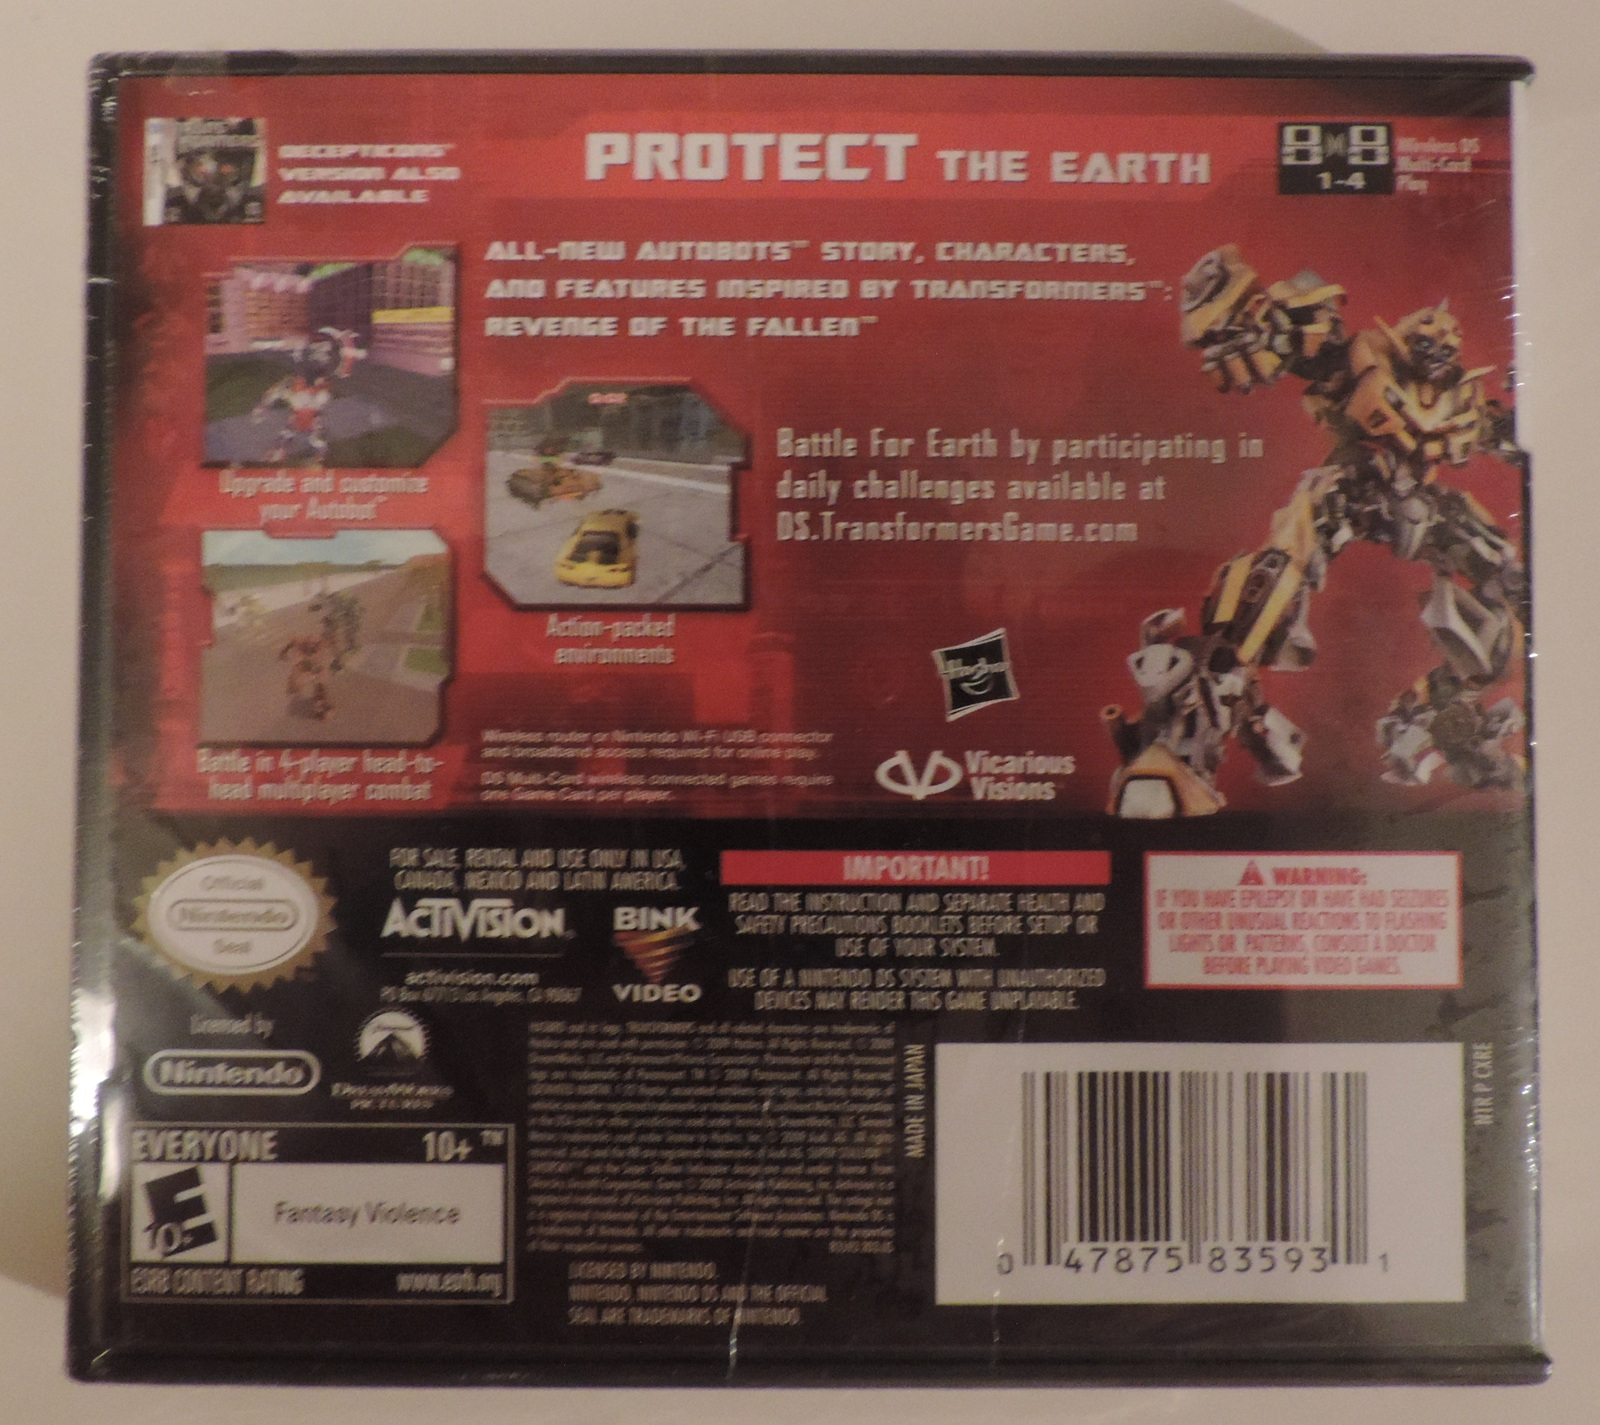 Transformers Revenge of the Fallen Autobots Version video game DS DSi - New